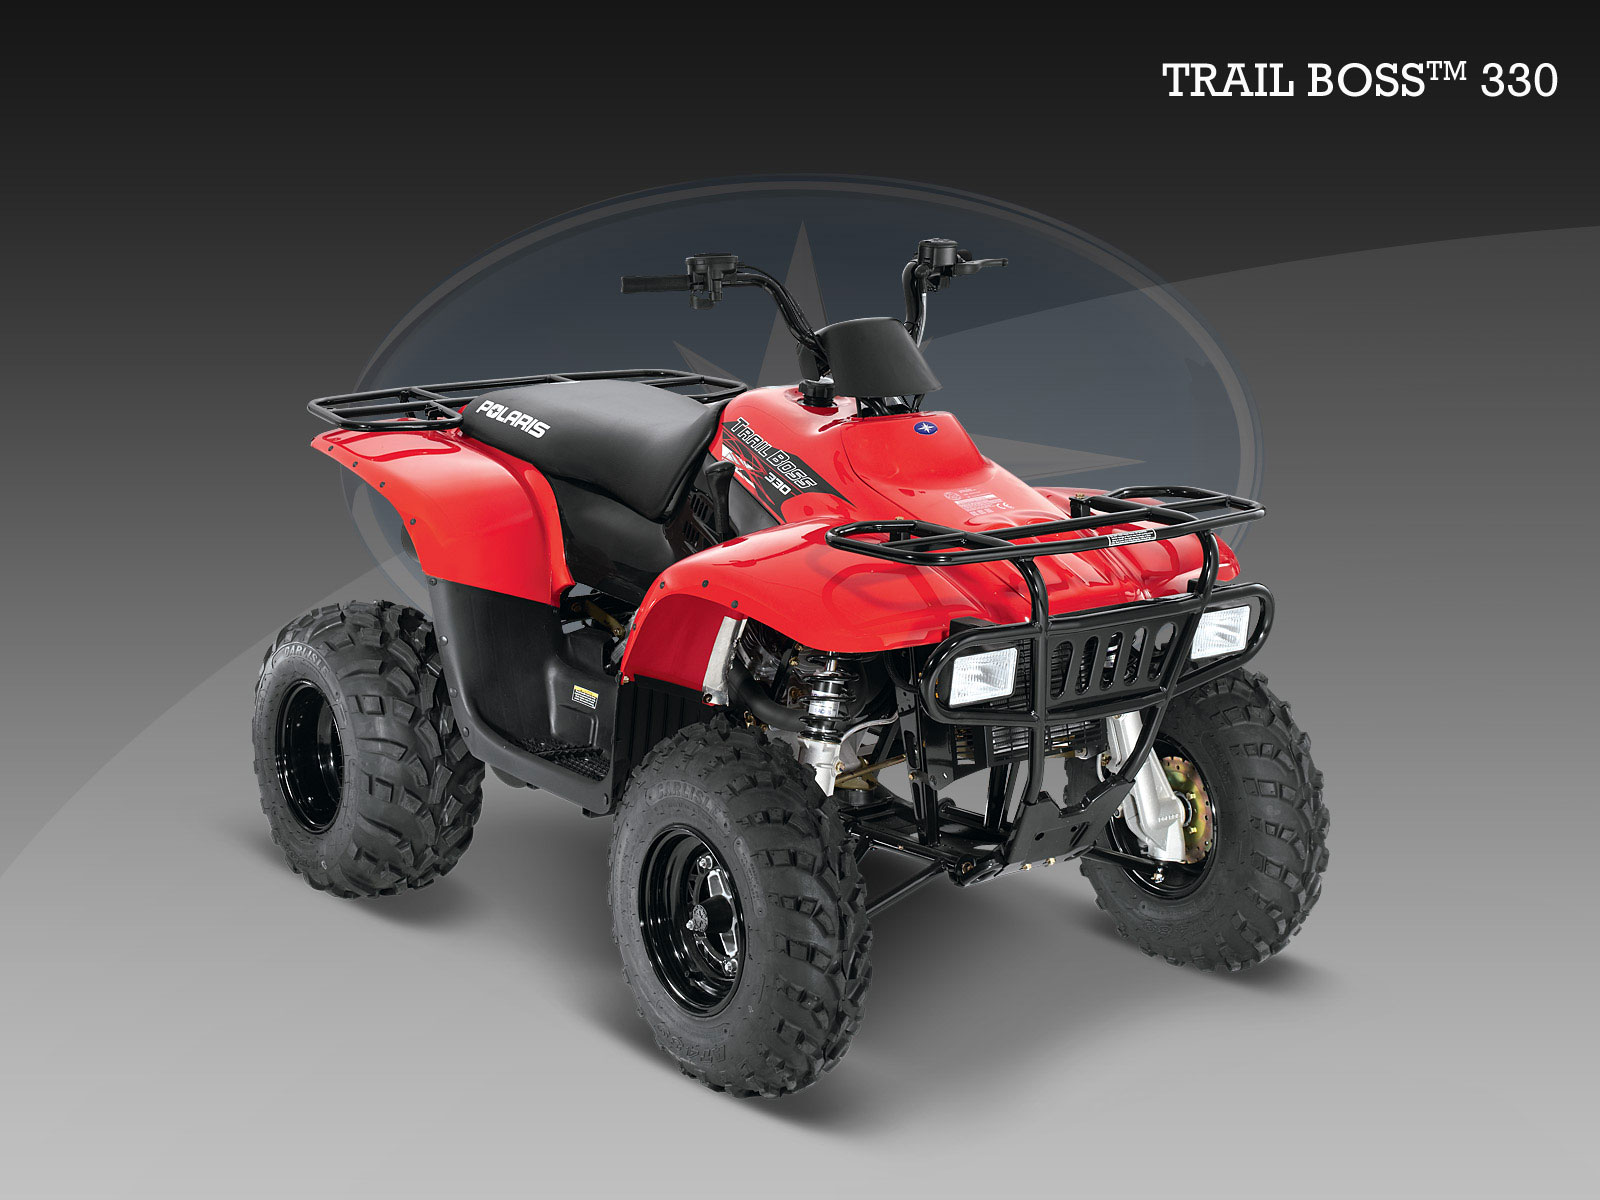 Polaris Trail Boss 330 2008 images #169652